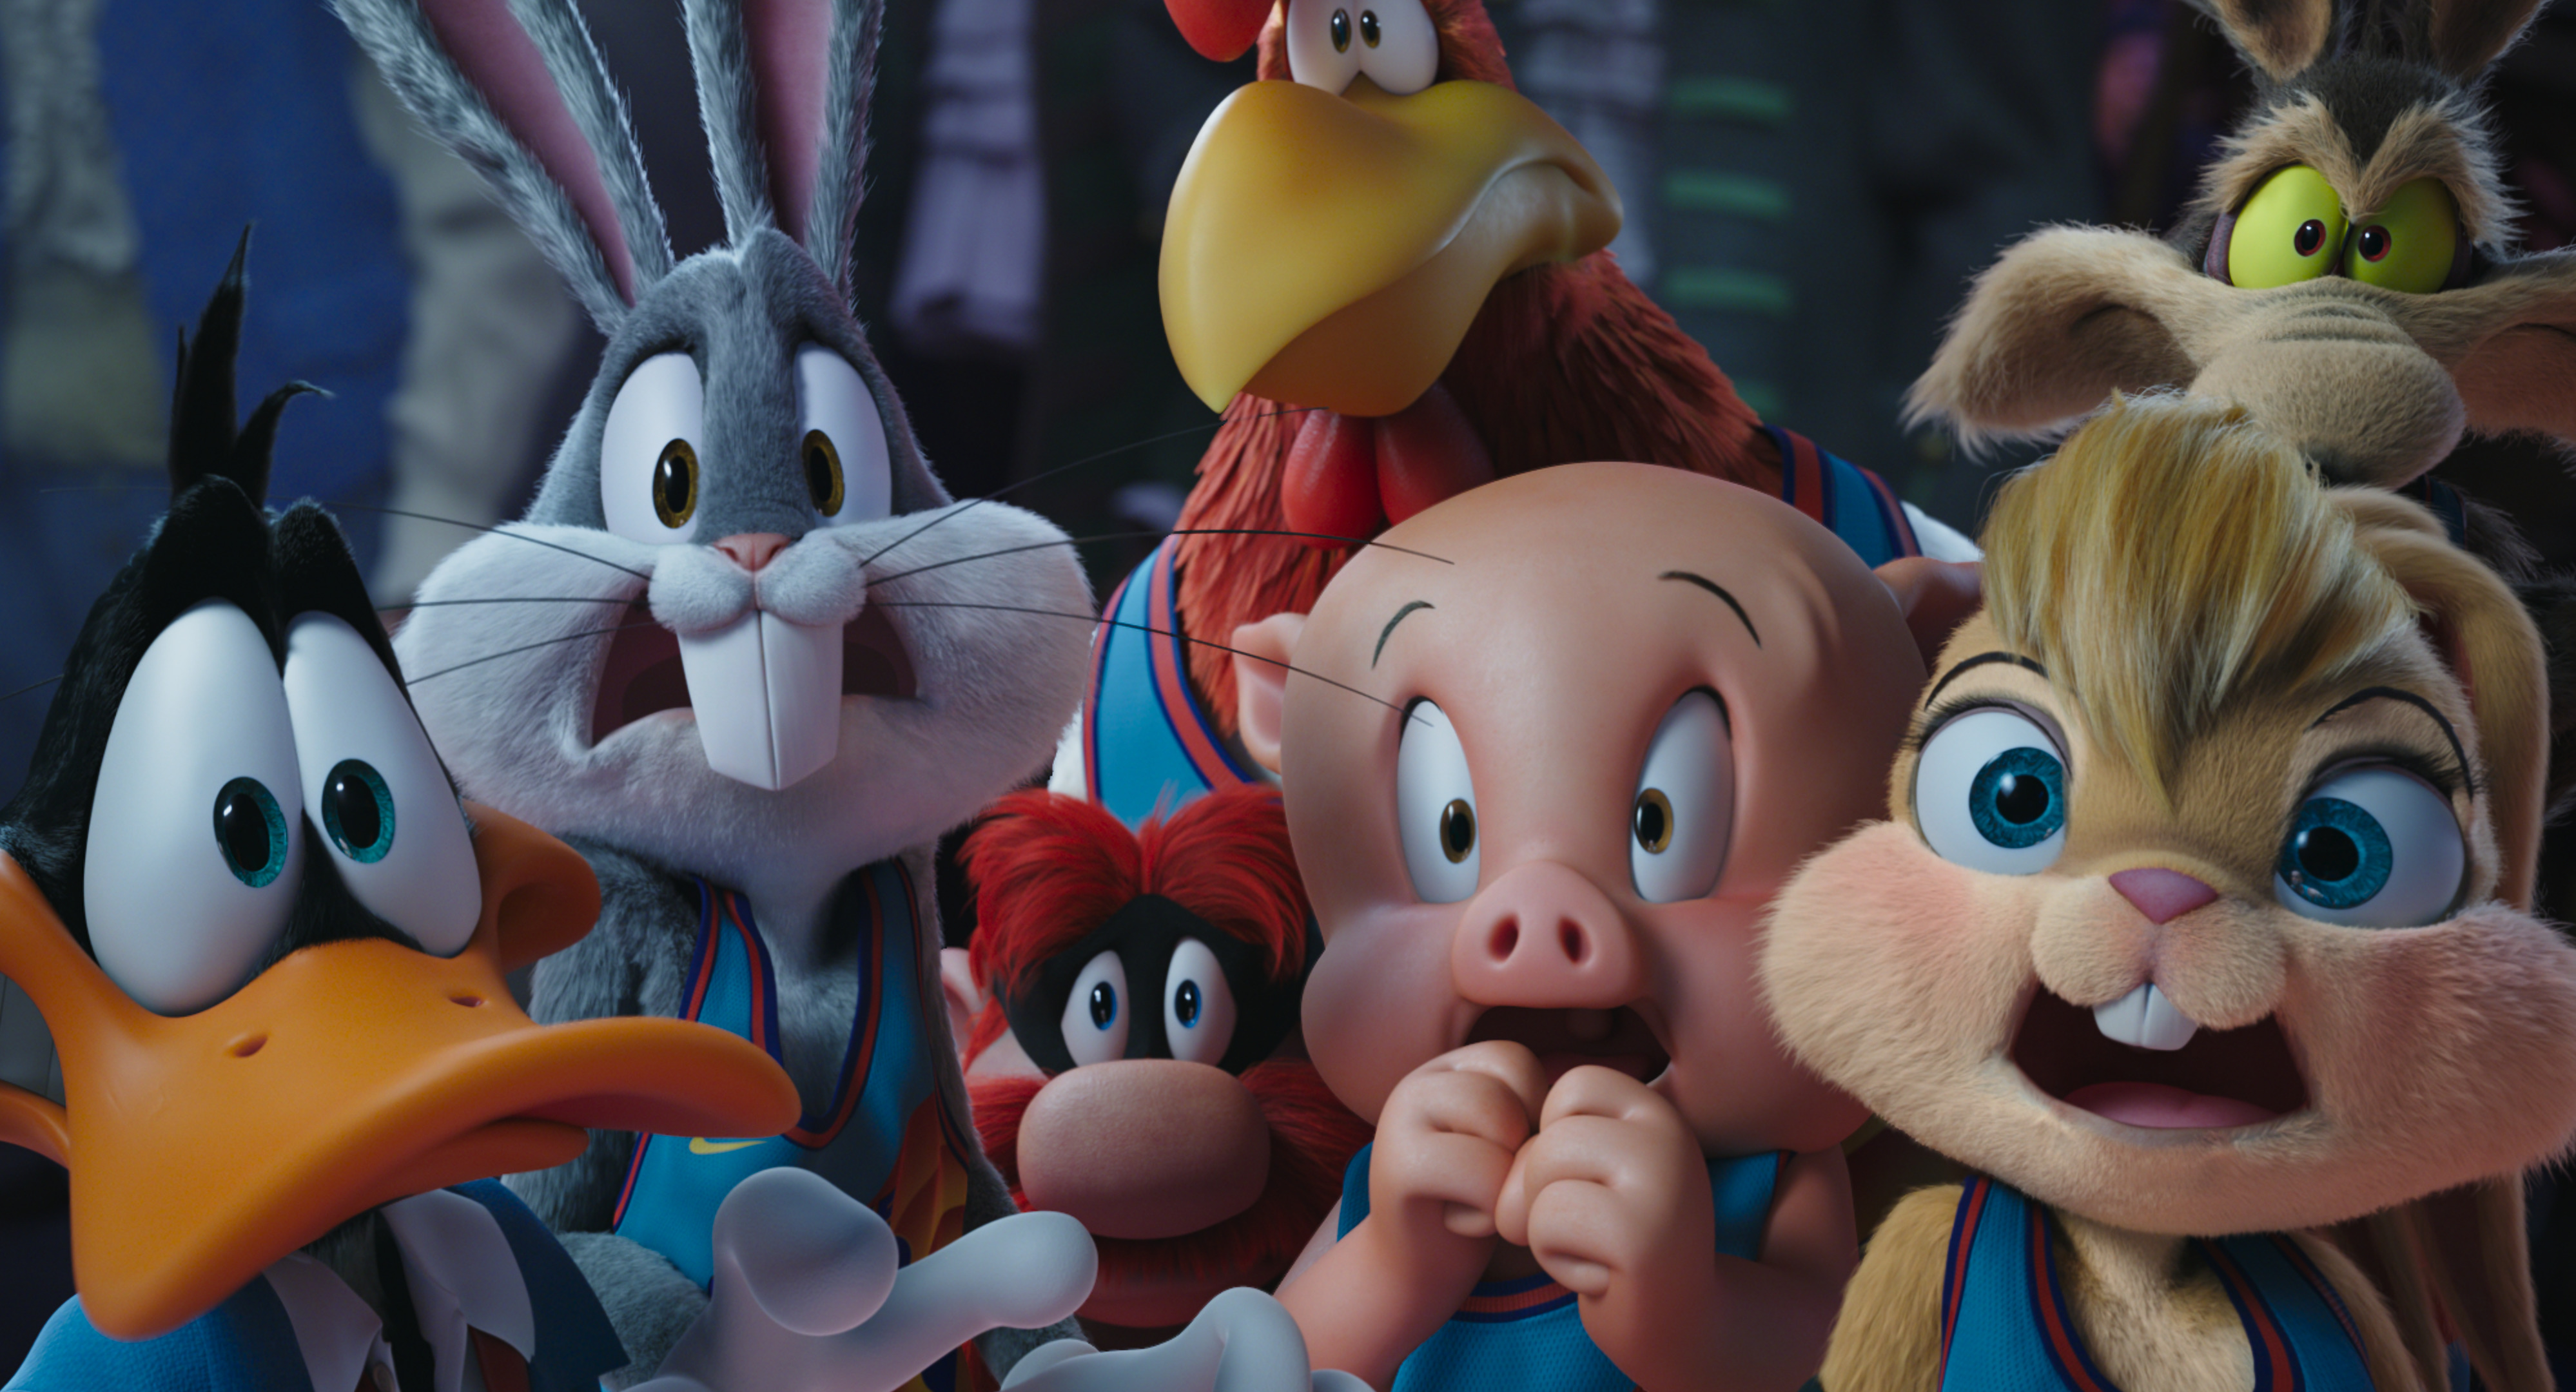 DAFFY DUCK, BUGS BUNNY, YOSEMITE SAM, FOGHORN LEGHORN, PORKY PIG, LOLA BUNNY and WILE E. COYOTE in Space Jam: A New Legacy. They look scared.